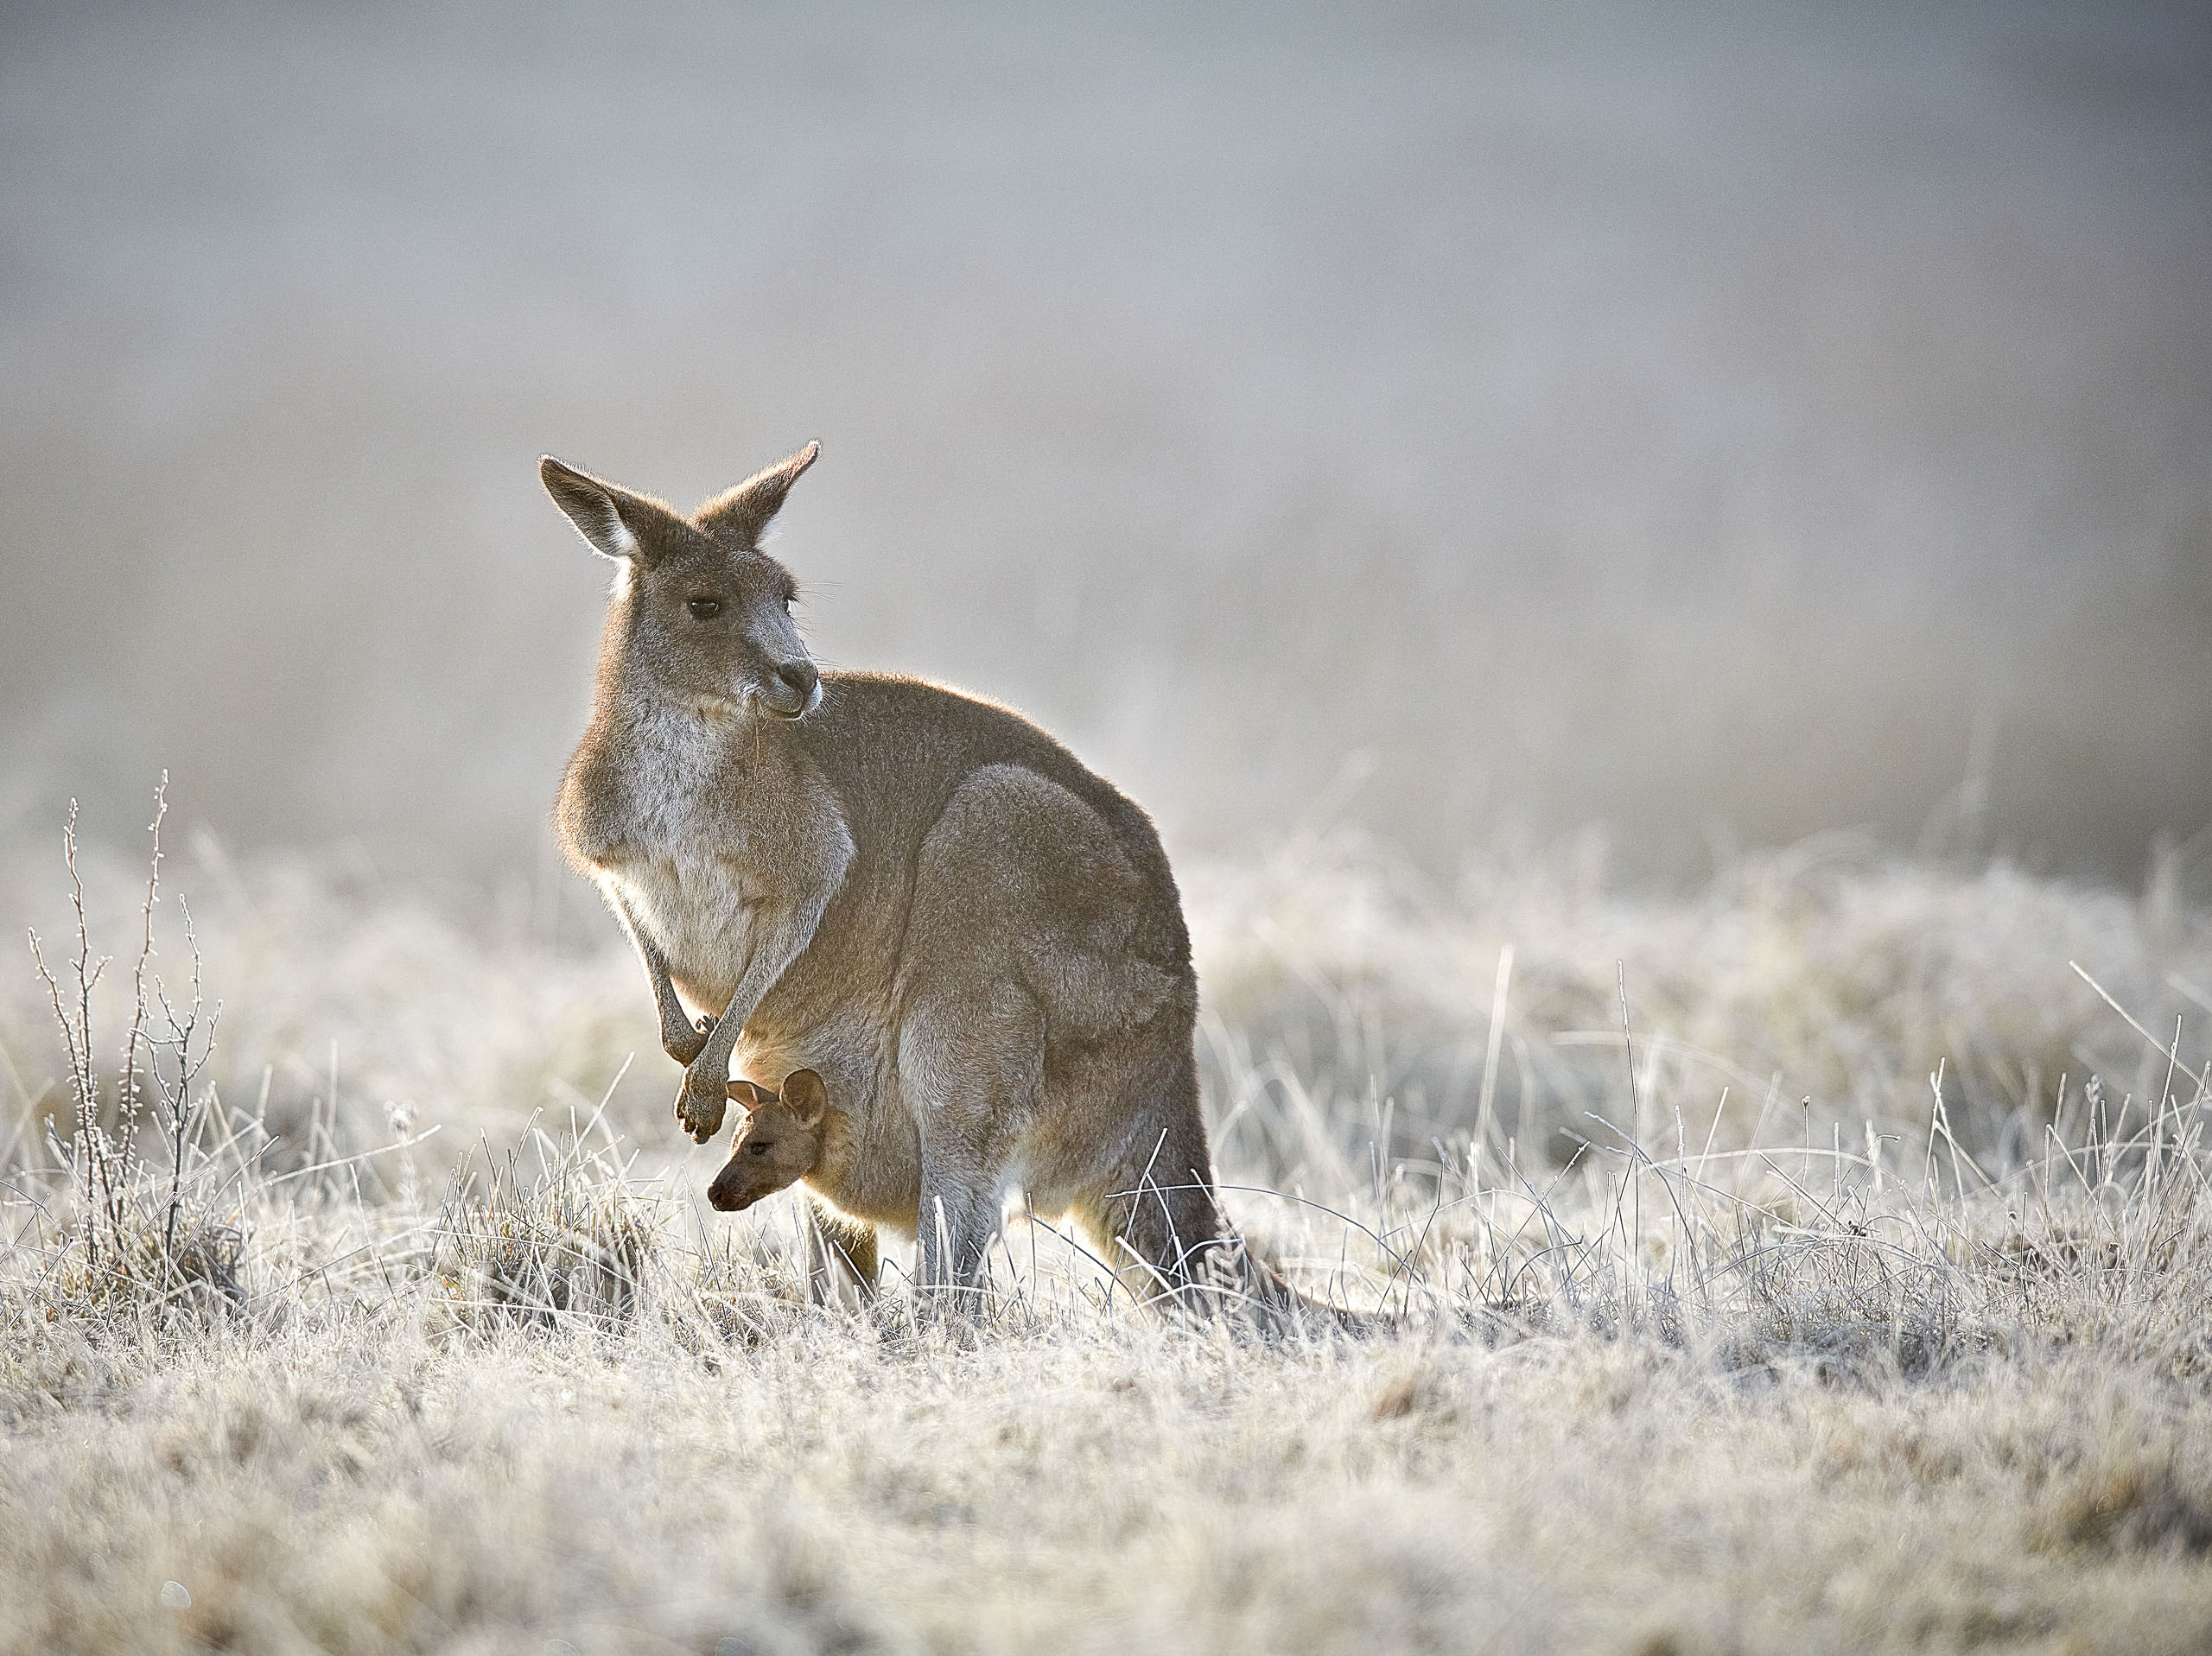 Kangaroo with joey in her pouch, Kosciuszko National Park, NSW, Australia.